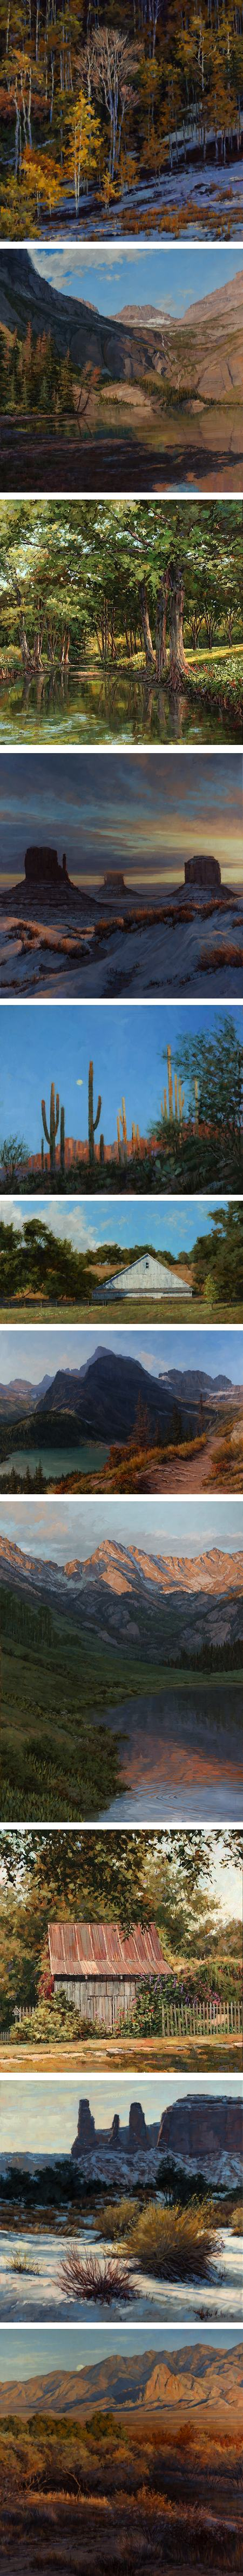 Darcie Peet, landscapes, mountains and desert